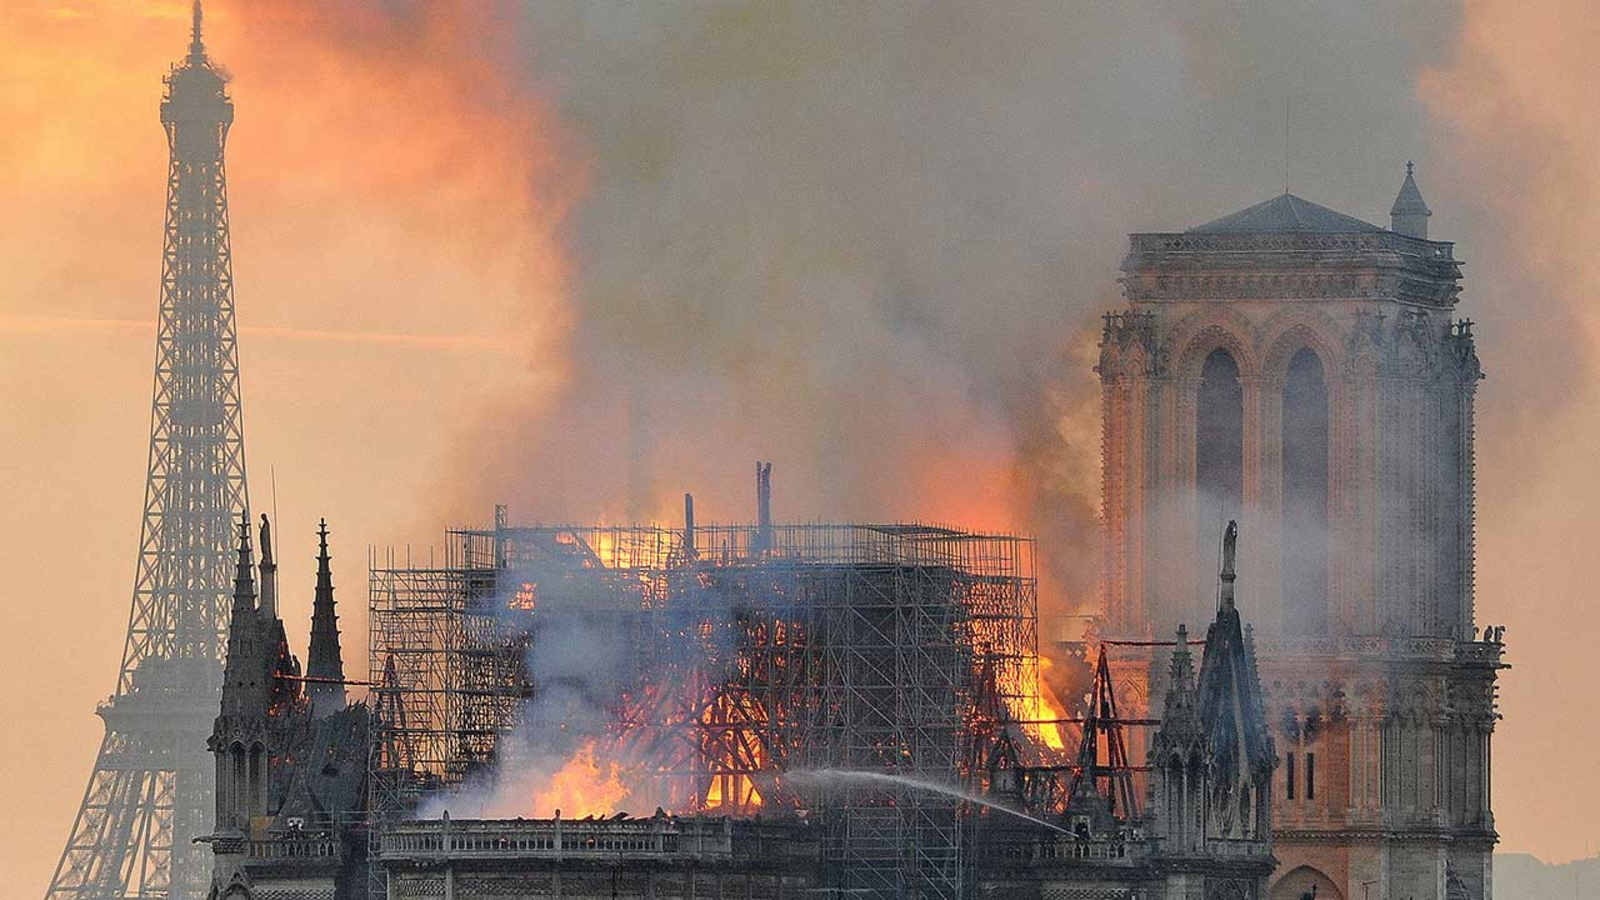 Notre Dame Cathedral Fire 1 Billion Raised To Help